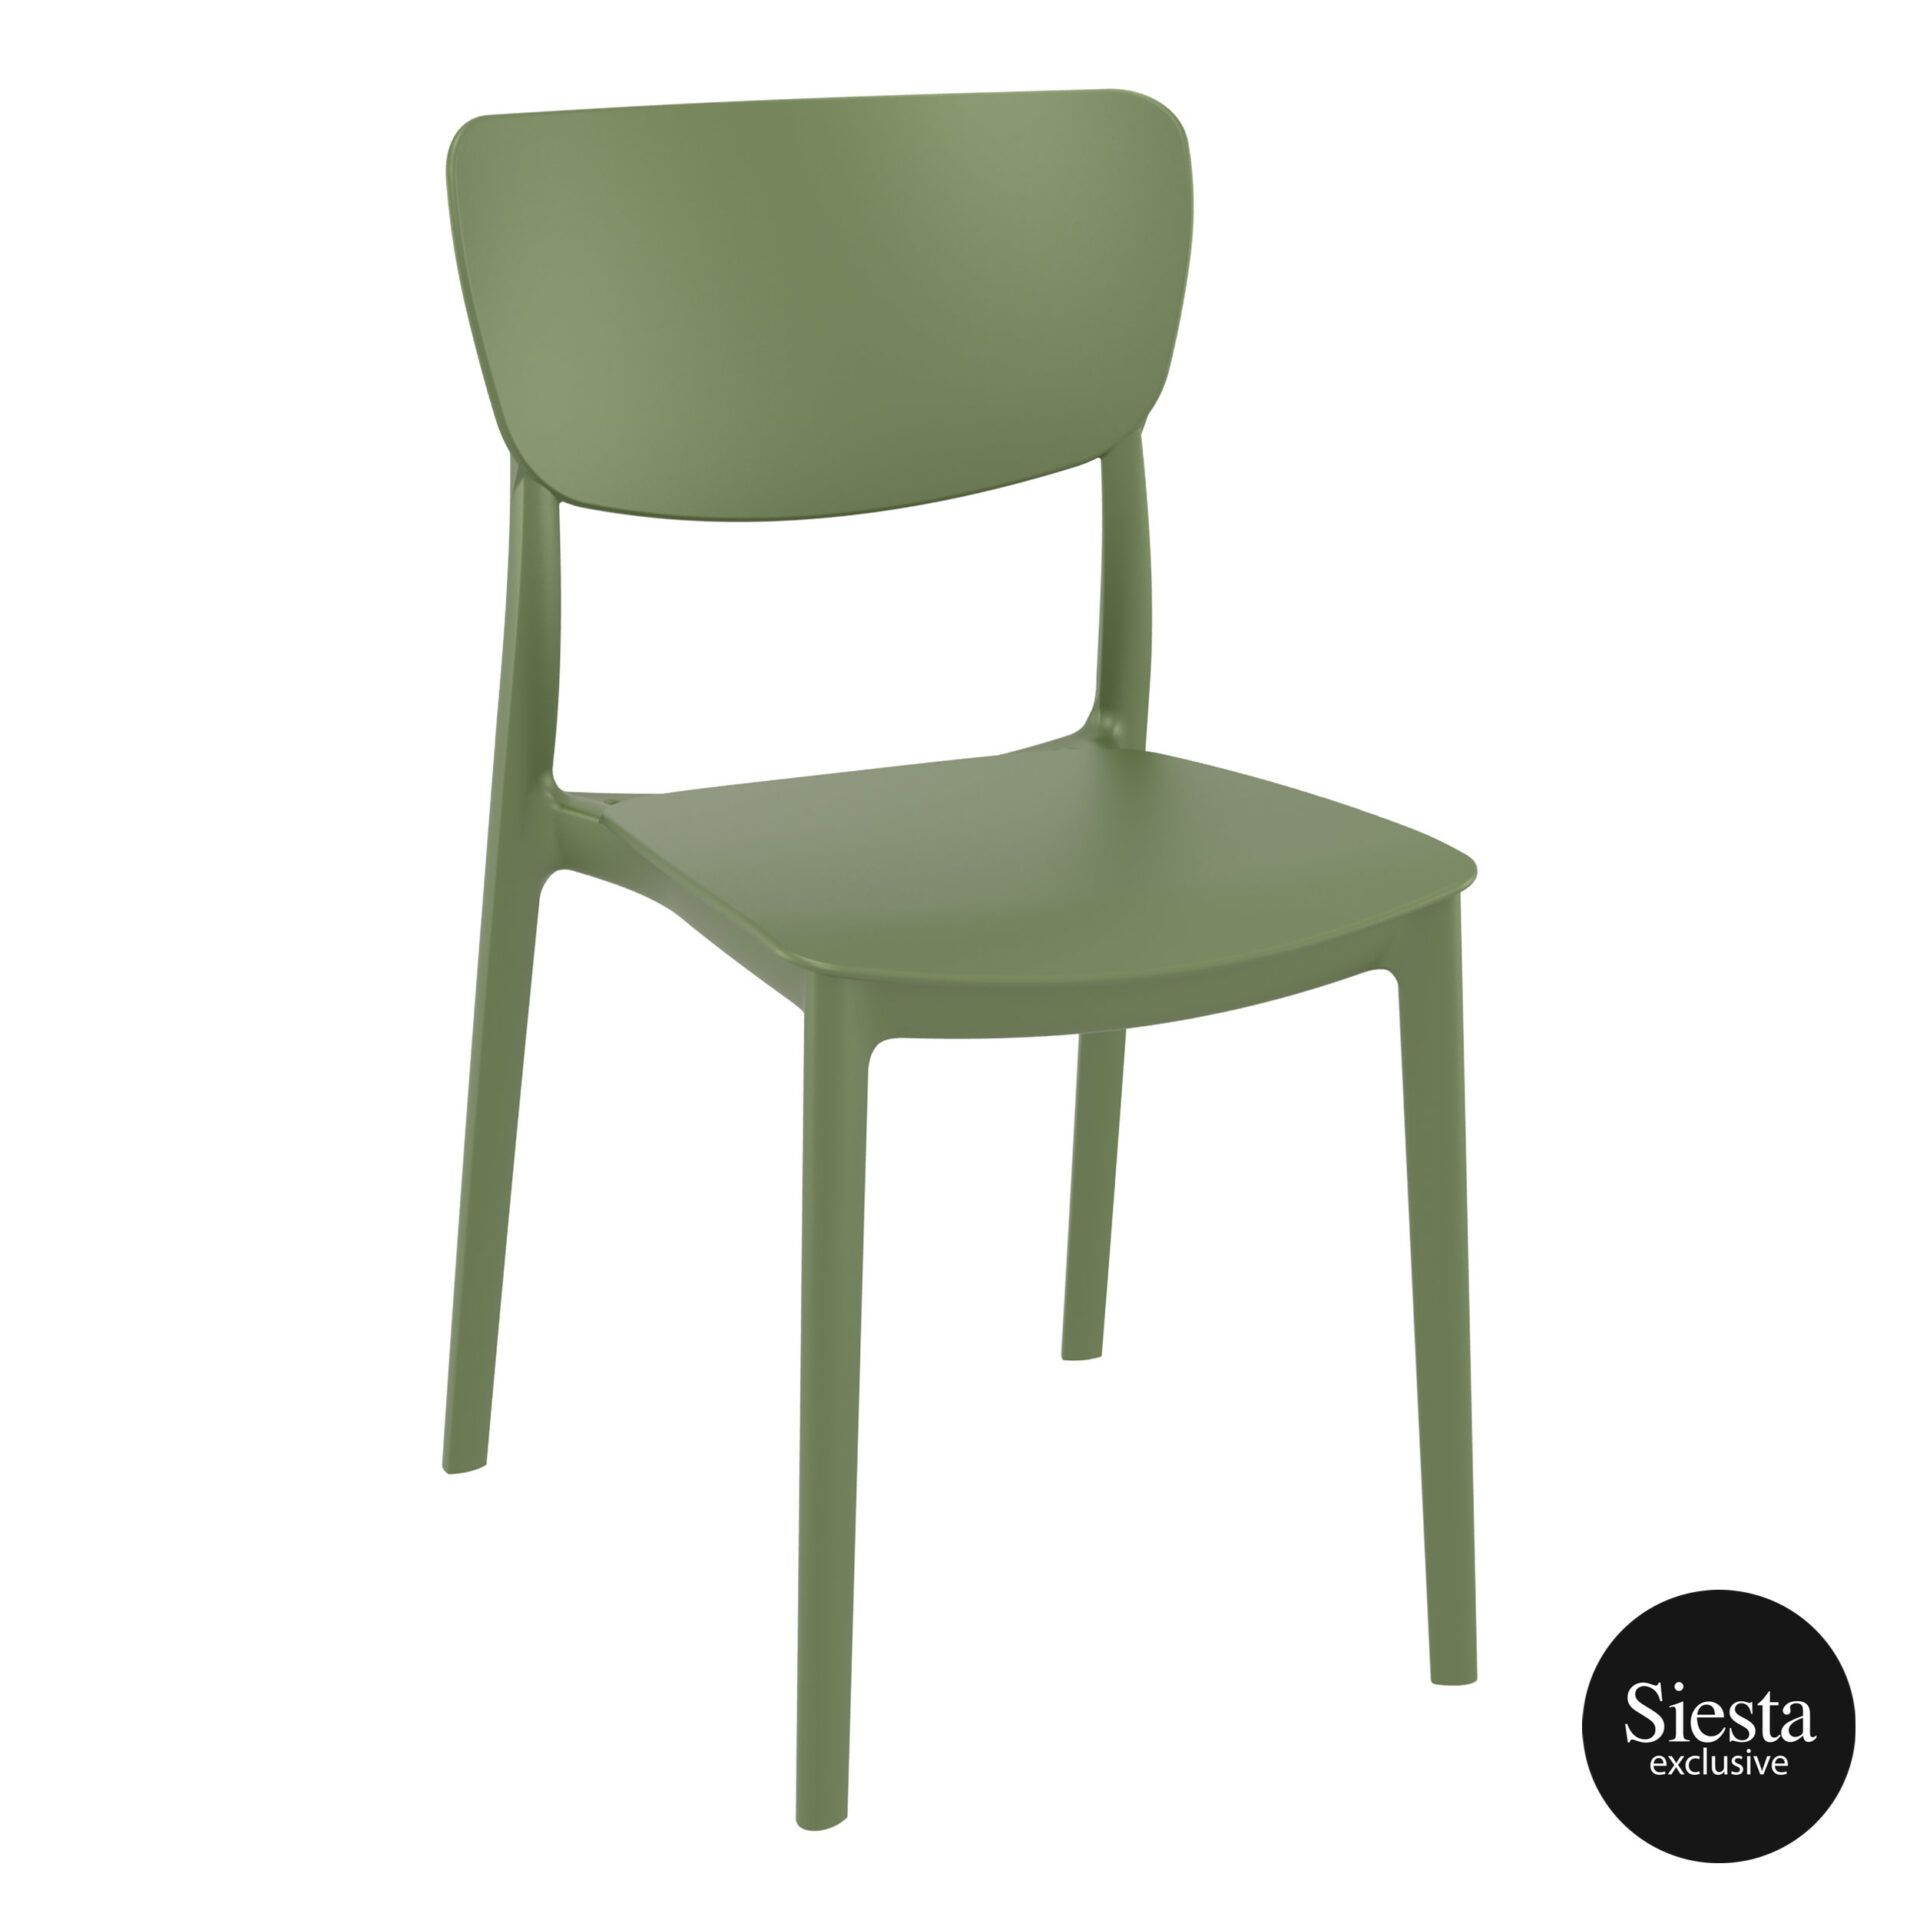 polypropylene outdoor dining monna chair olive green front side 1